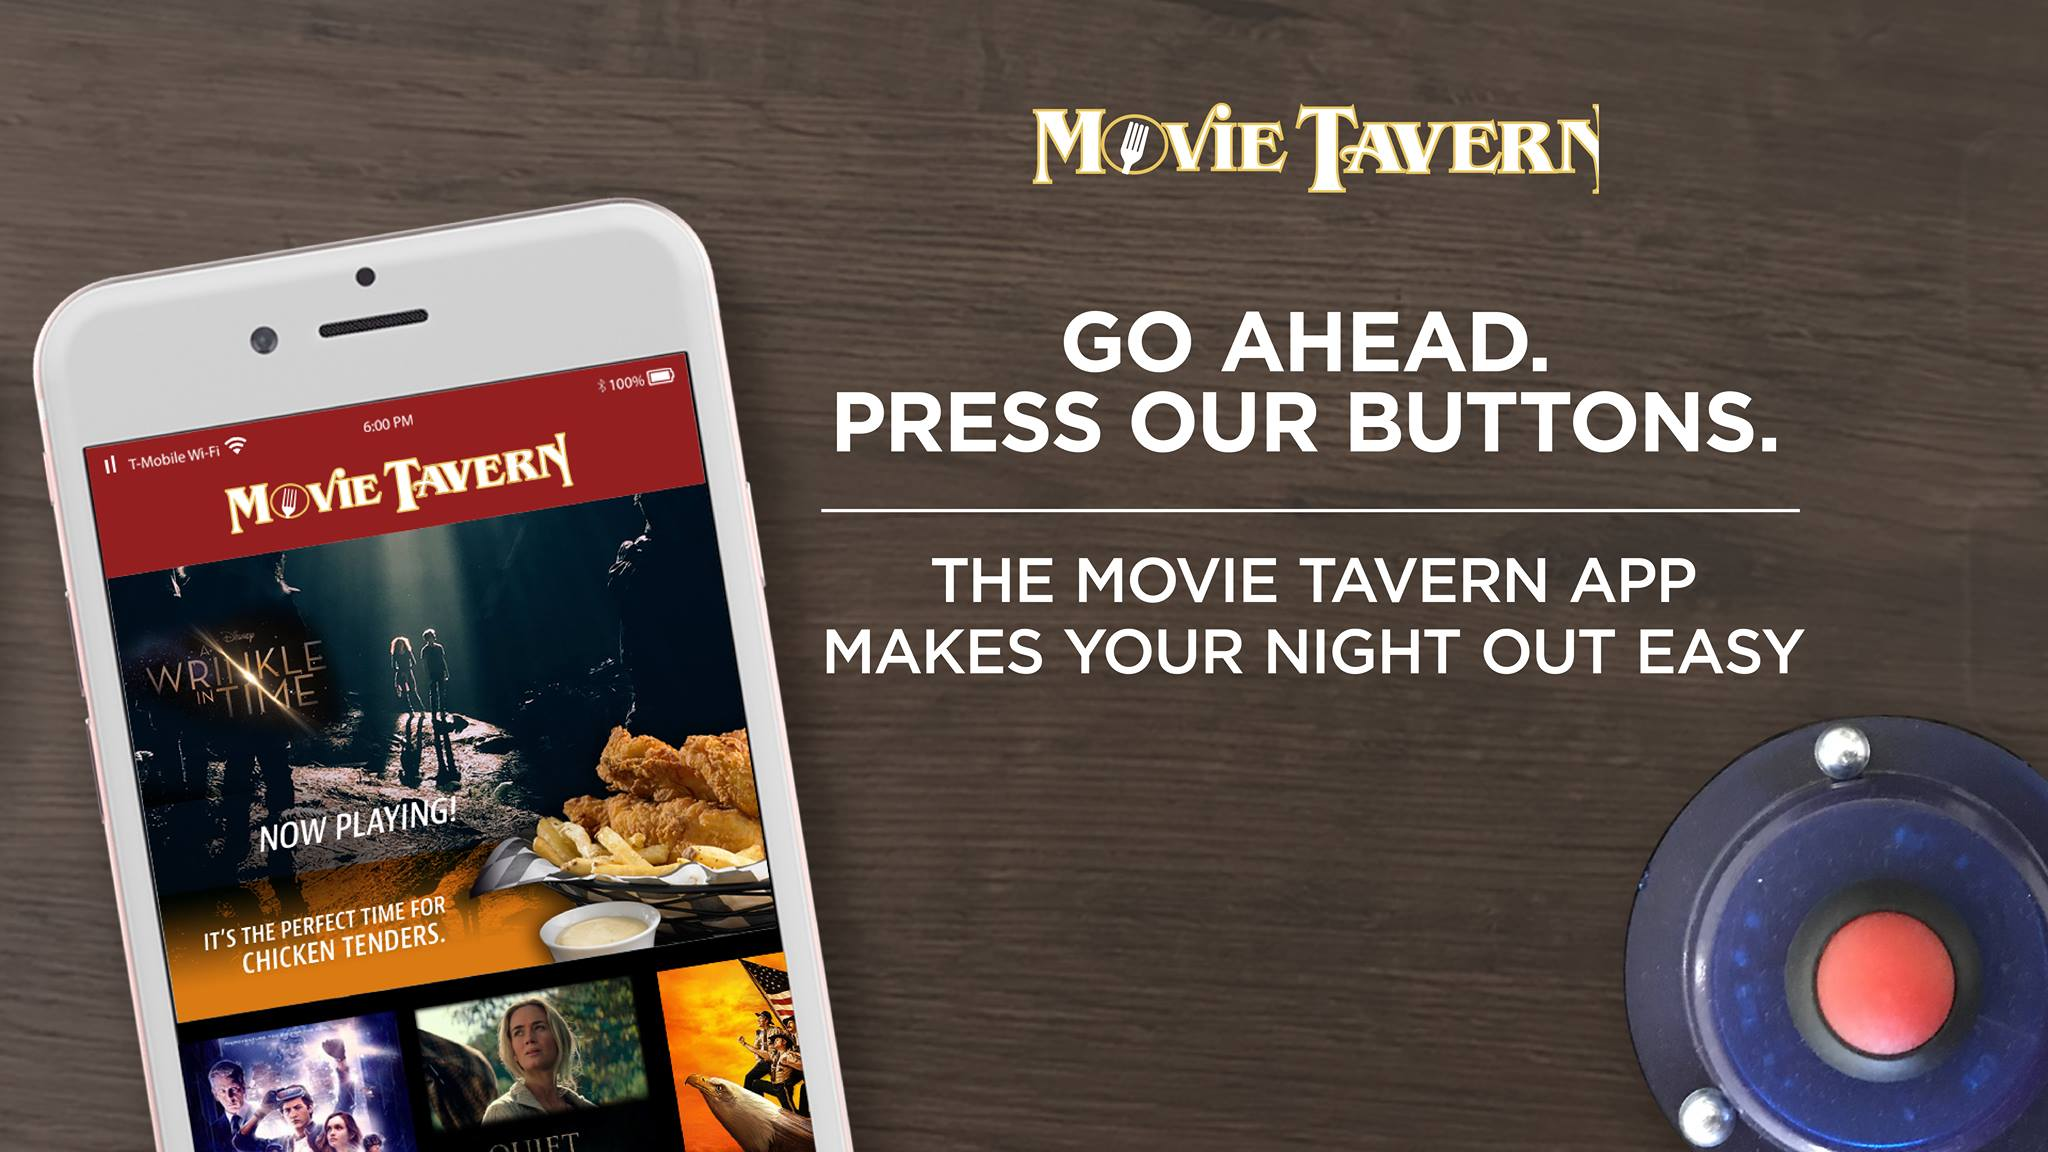 Movie Tavern On Twitter On The Road This Week See If There S A Movie Tavern Near You Find The Nearest Location Here Https T Co 5u26ahejdx Https T Co Qkypte8dvn